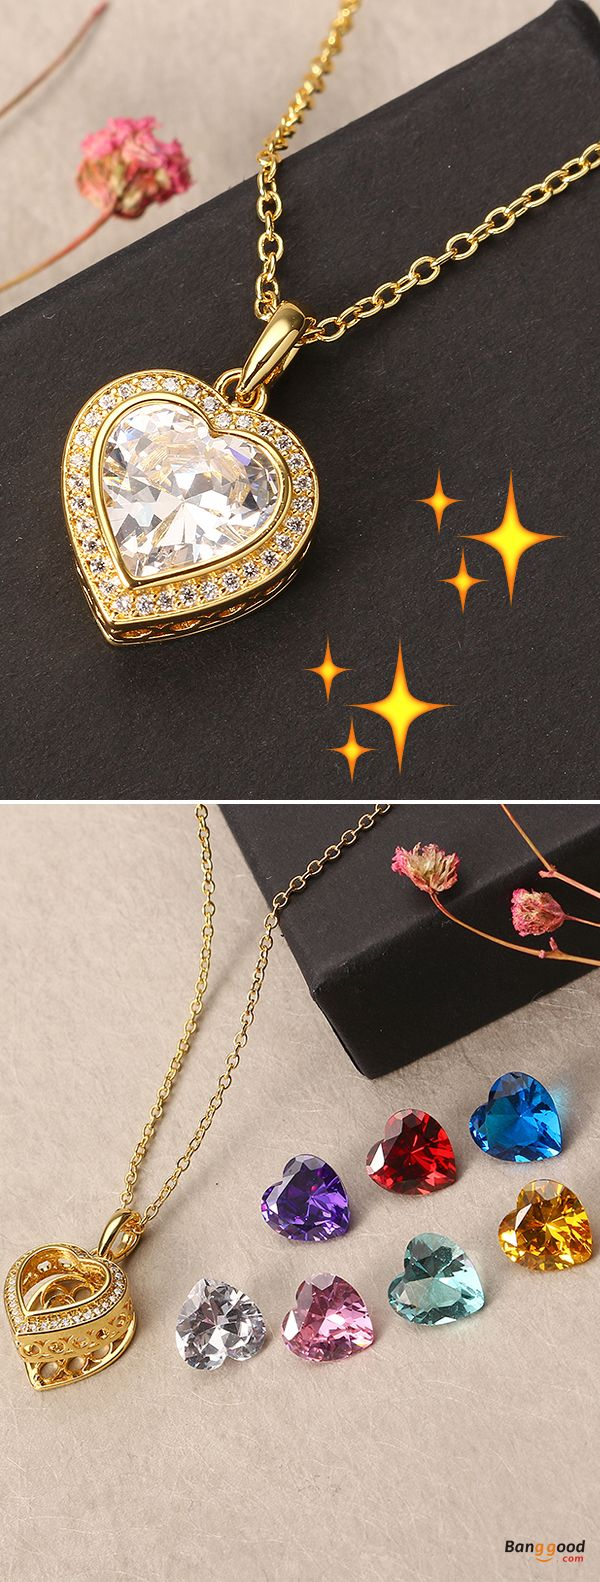 US$29.99 + Free shipping. Material: 18K Gold Plated (Nickel Free), Fine Copper, Zircon (White, Pink, Purple, Blue, Lake Blue, Yellow, Red). Fall in love with trendy style! JASSY® Gold Plated Necklace with 7 Different Color Gemstone Open Heart Pendant Fine Women Jewelry.